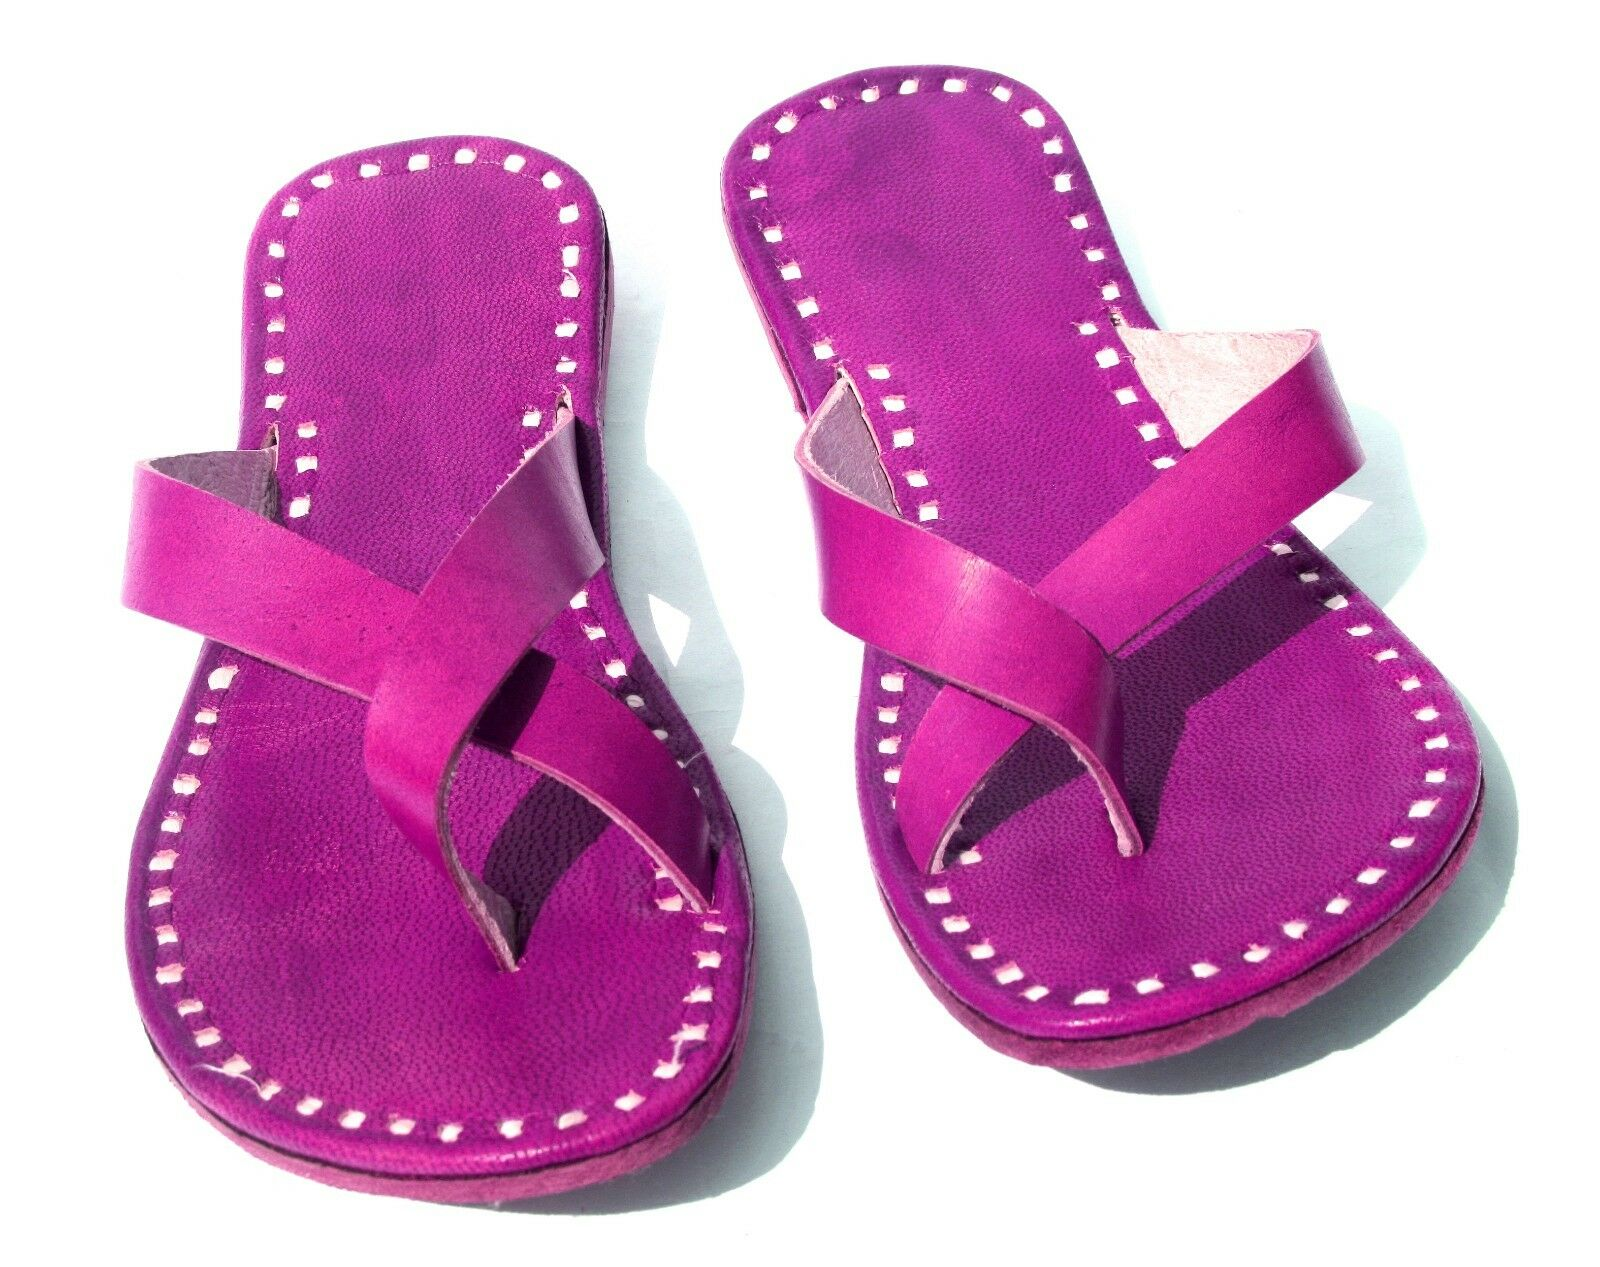 pink womens slippers Leather leather slippers shoes flipflops handmade leather Leather slippers 462f79